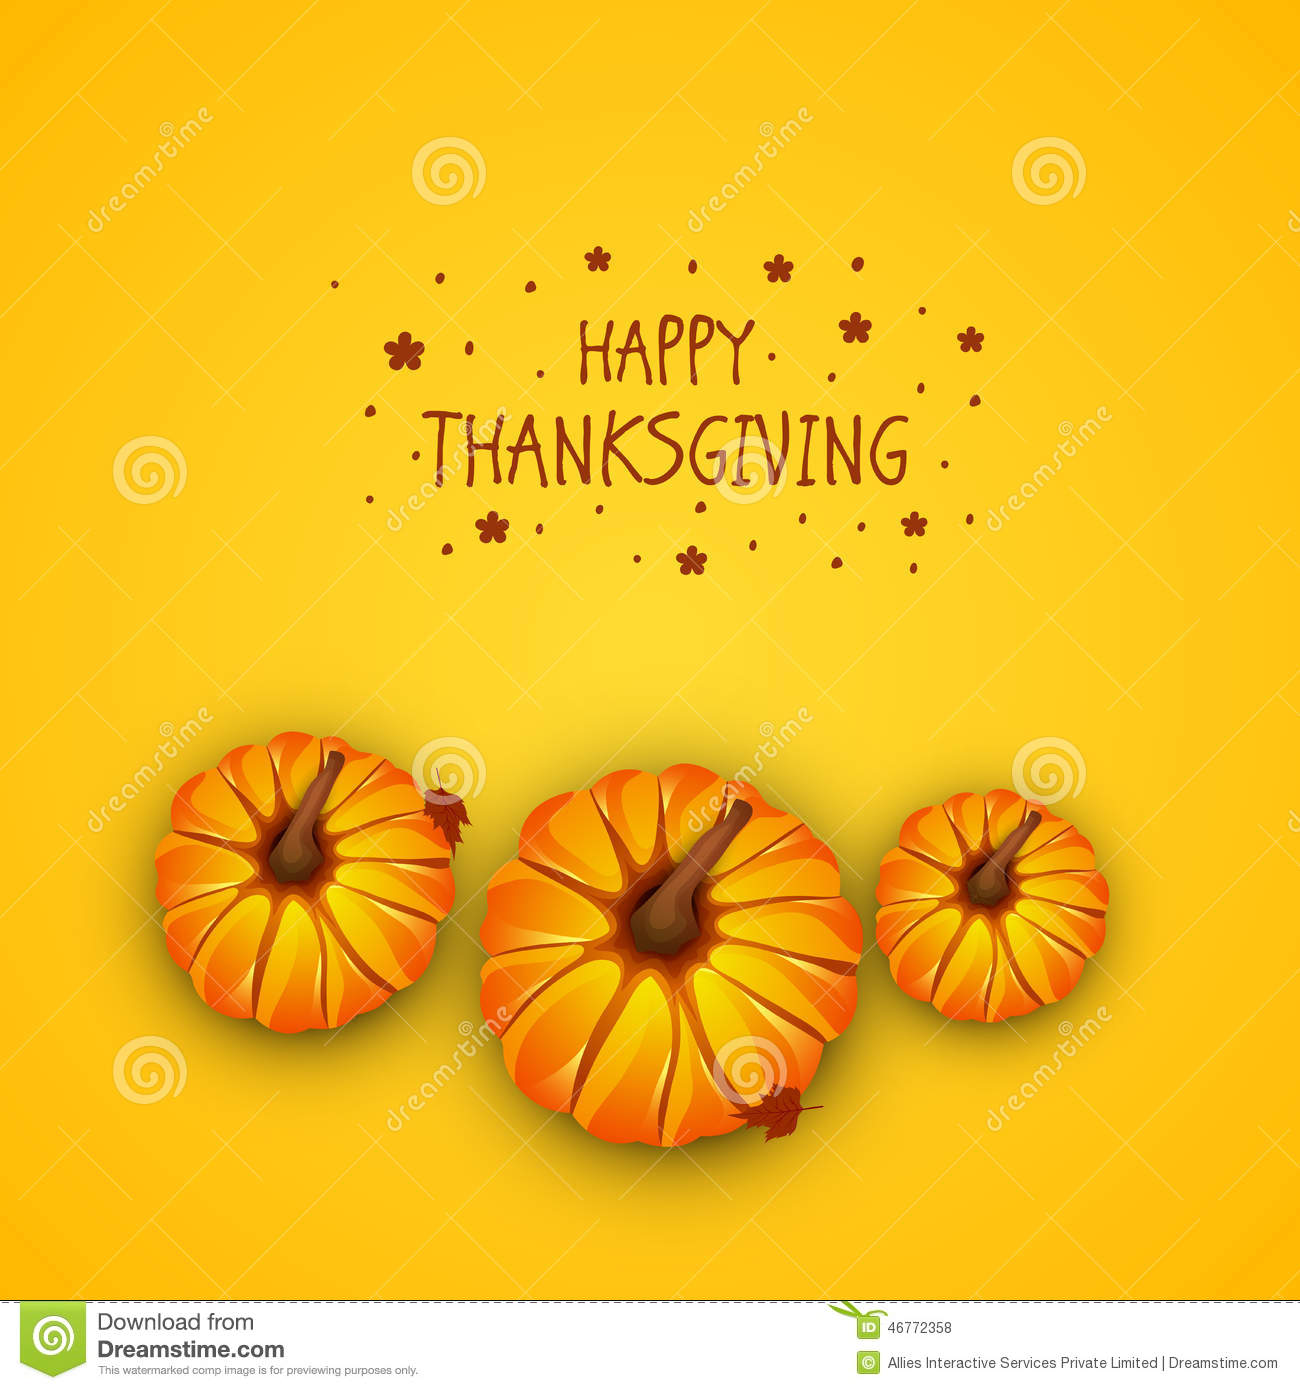 thanksgiving day celebration essay Thanksgiving dinner at my house essaysone of the best thanksgiving dinner memmories i have is when i was asked to cook dinner at my house  knowing that my day was.